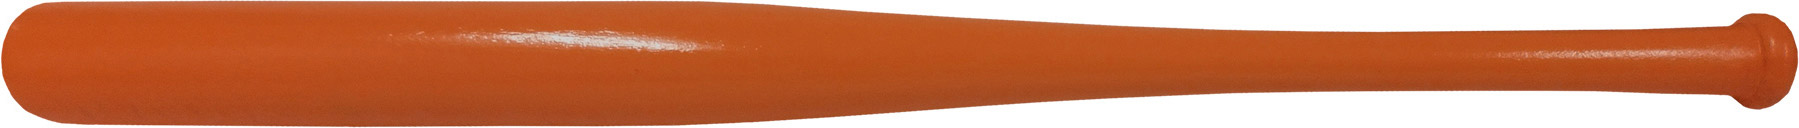 novelty orange baseball bat souvenir baseball bat